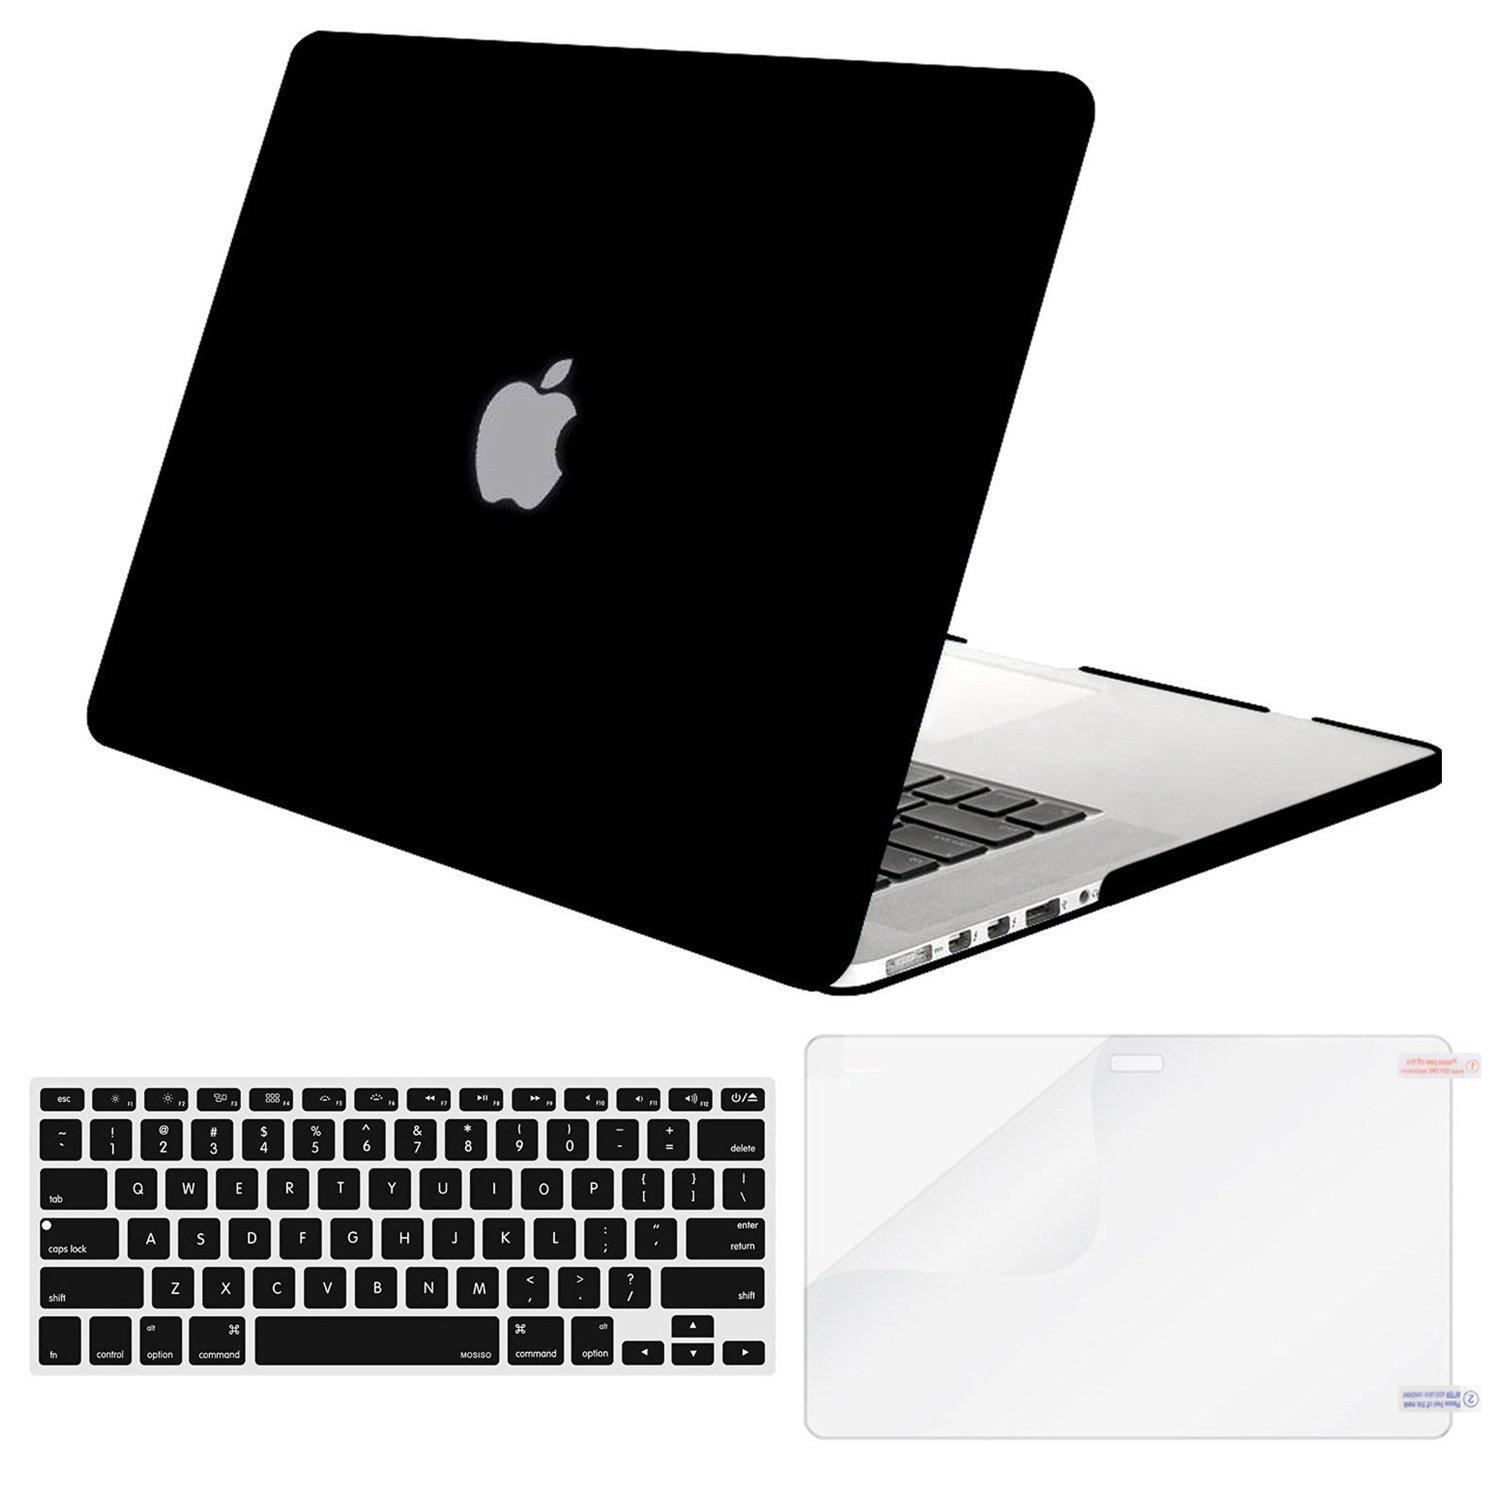 MacBook Pro 13 Inch Matte Plastic Hard Shell Case Cover for MacBook Pro13 Inch A1425/A1502 (Version 2017/2016/2015) Contains Keyboard Cover